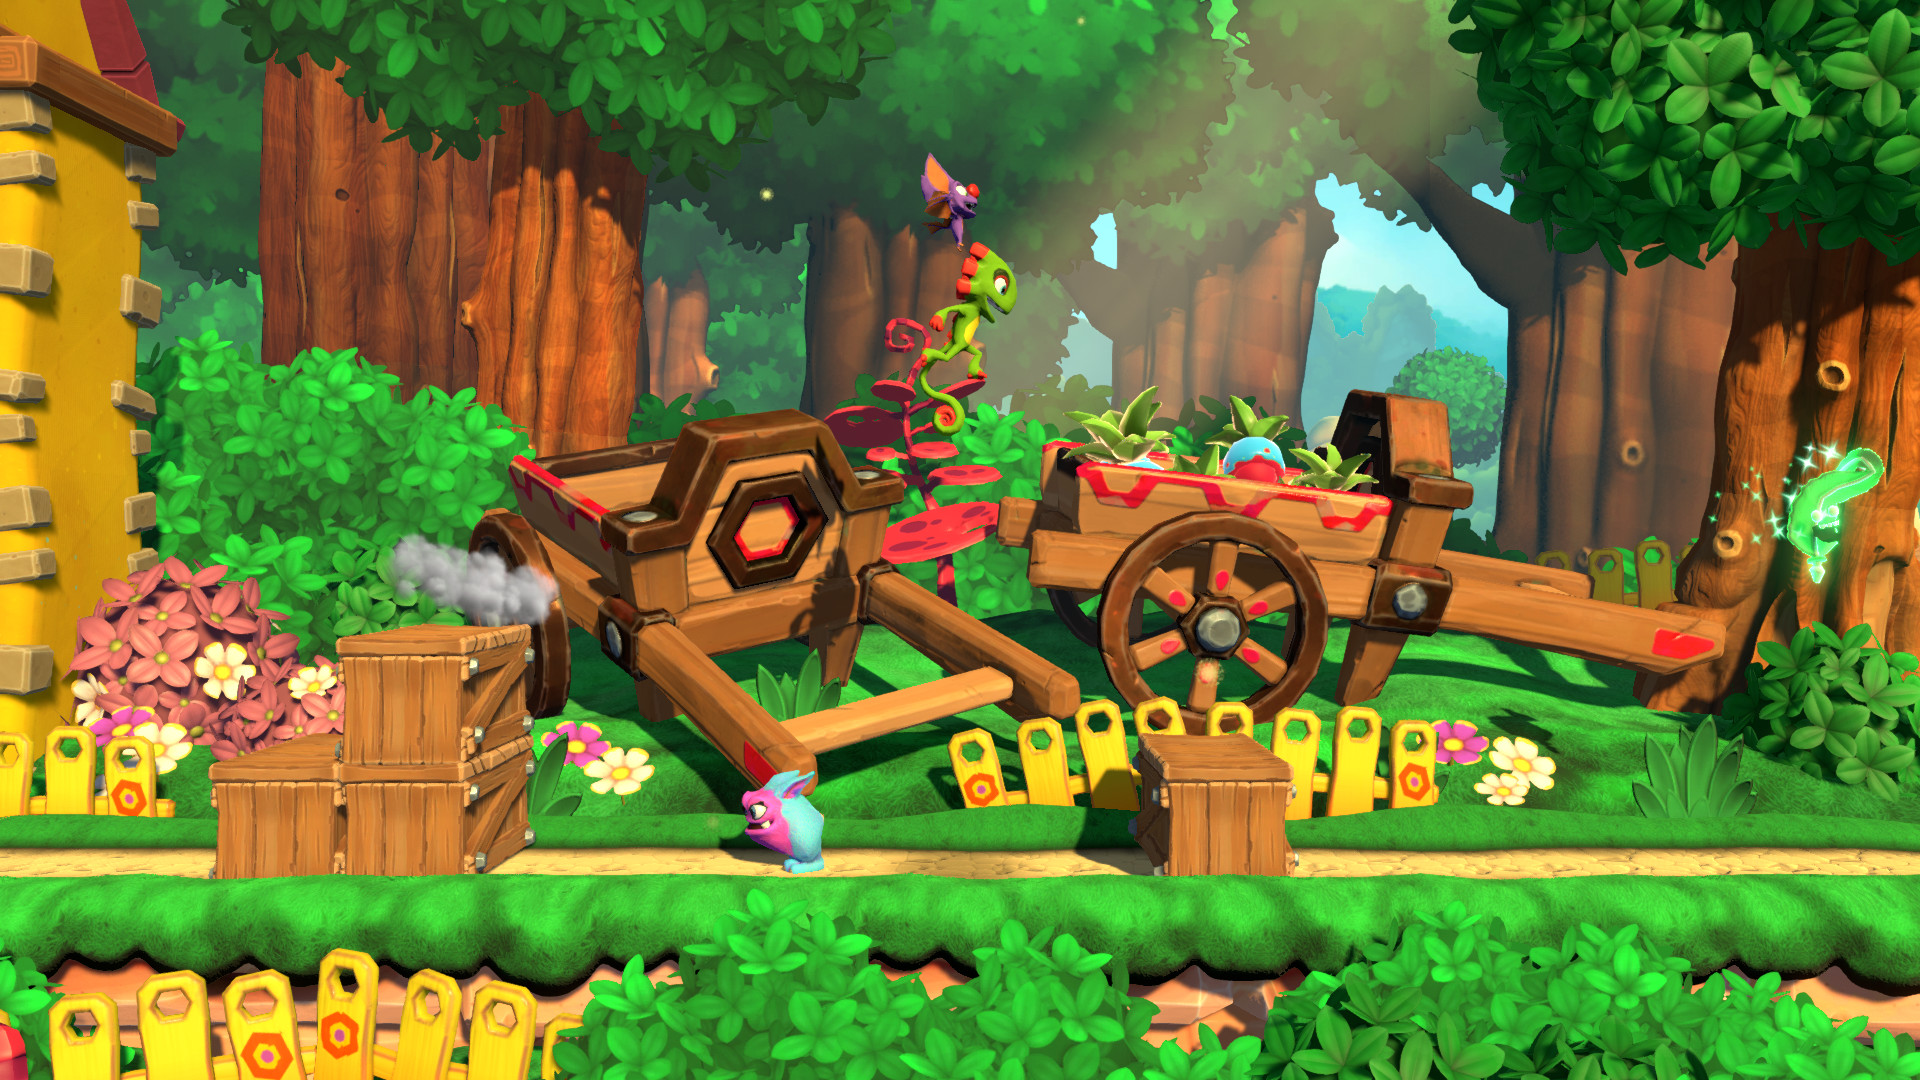 Link Tải Game Yooka-Laylee and the Impossible Lair Miễn Phí Thành Công